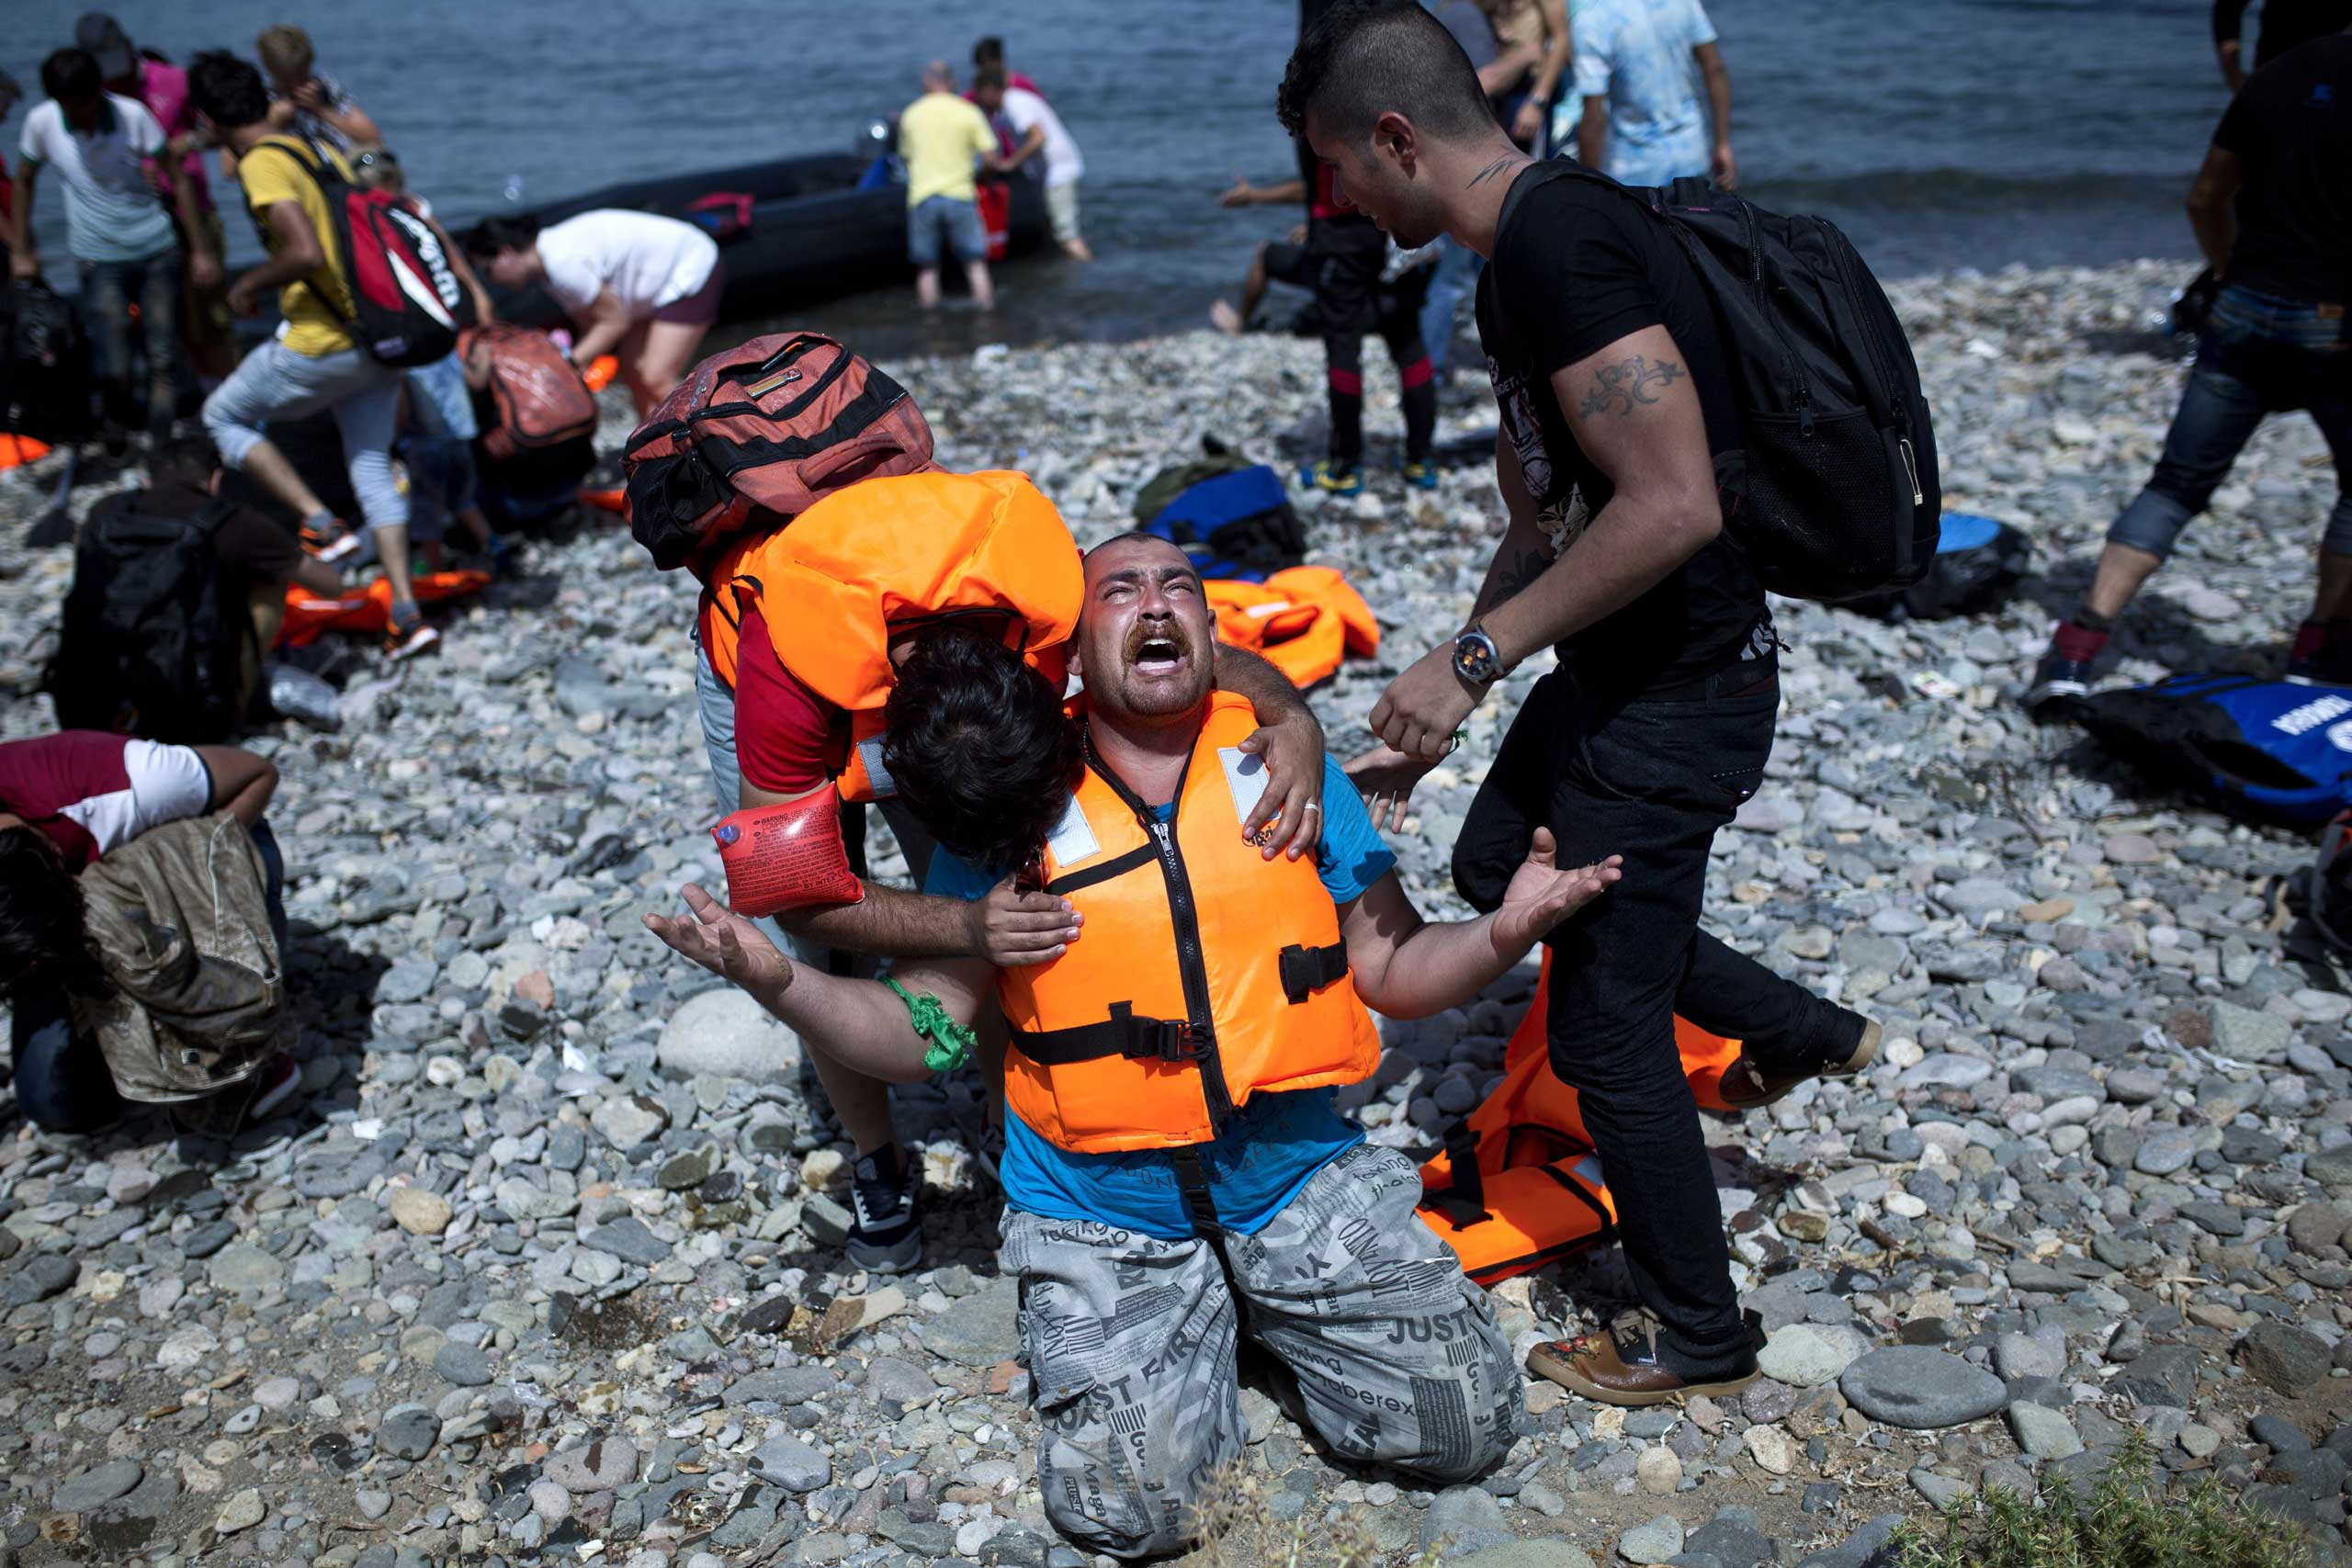 A refugee from Syria prays after arriving on the shores of the Greek island of Lesbos aboard an inflatable dinghy across the Aegean Sea from from Turkey, Sept. 7, 2015.